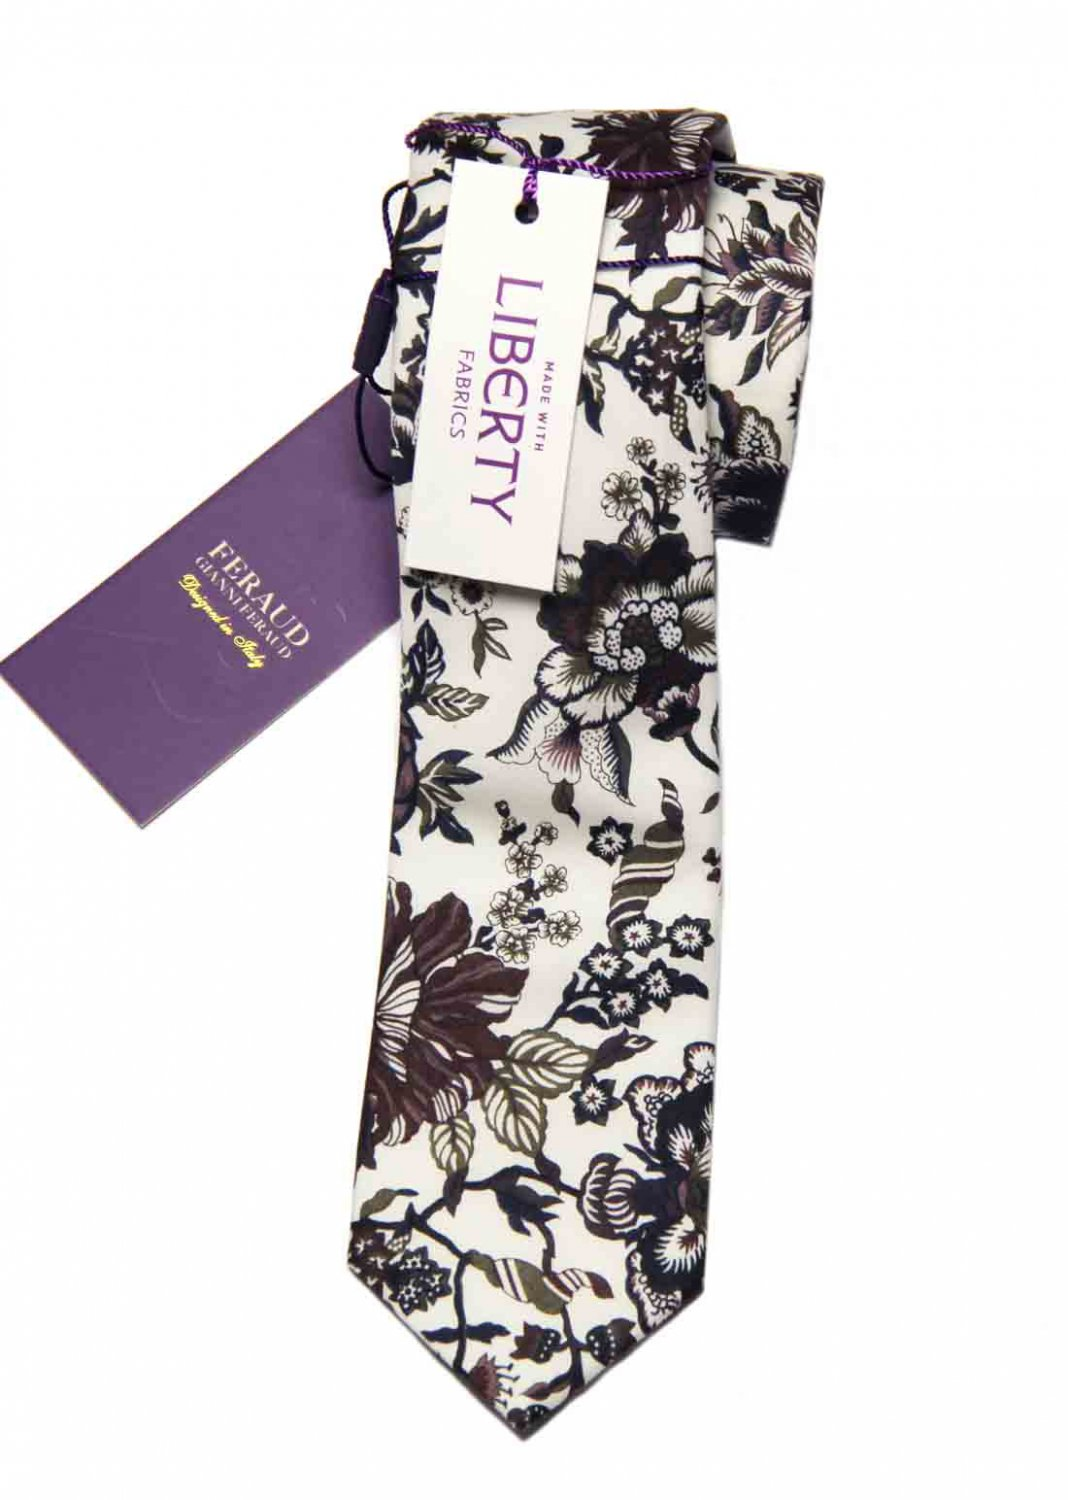 Feraud Liberty of London Fabric Tie Cotton Floral Narrow Men's